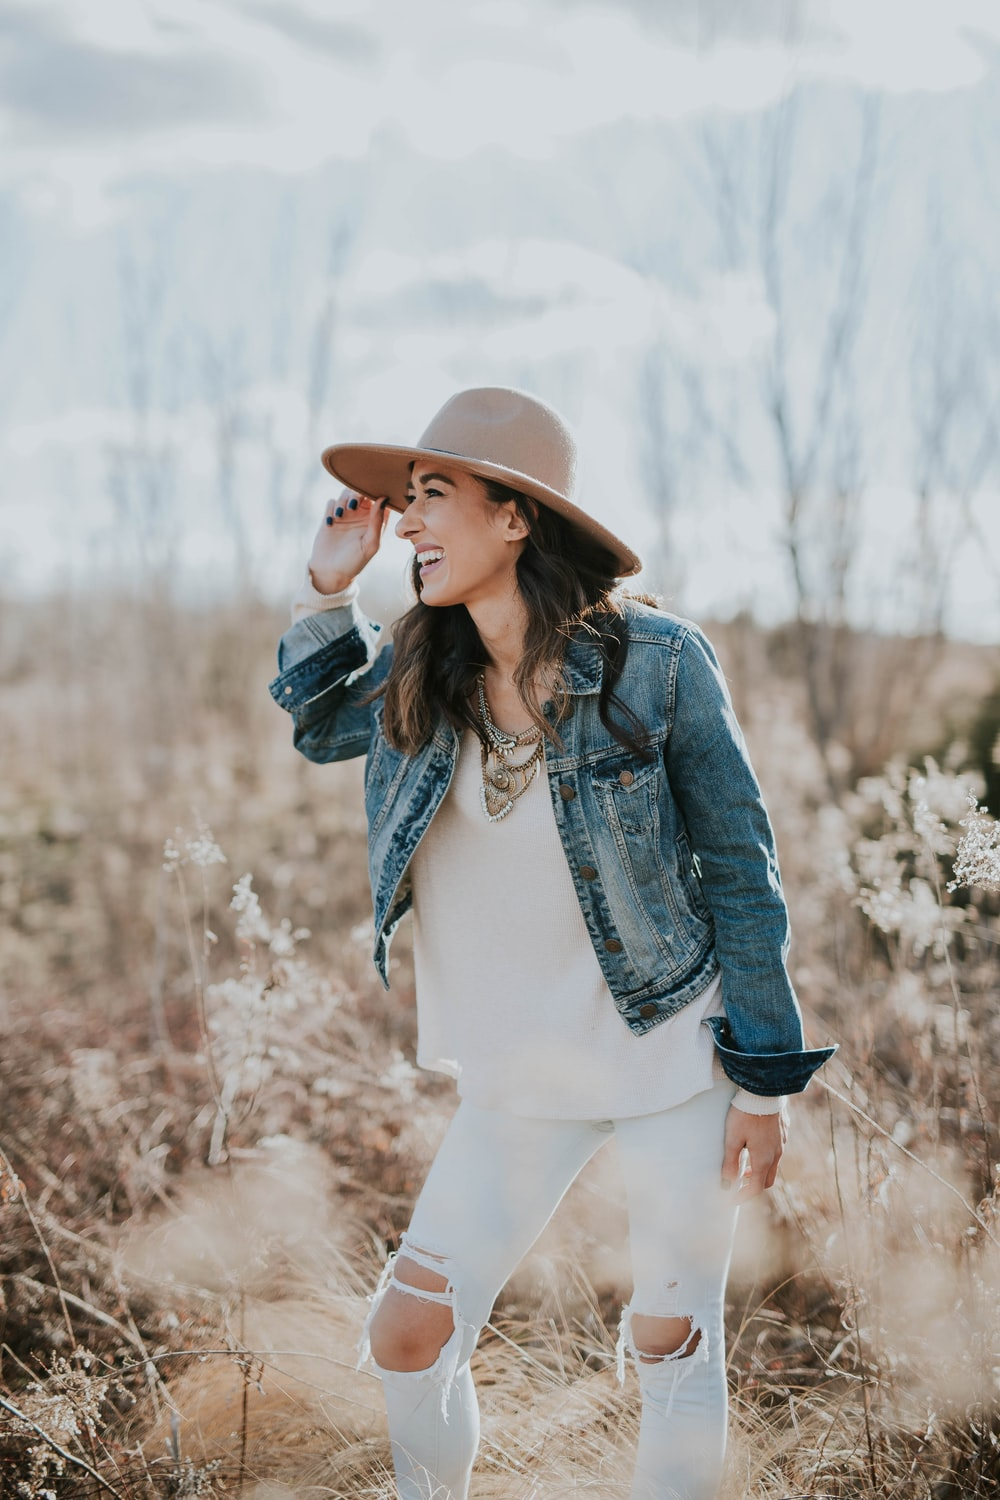 woman standing on dried grass facing right while holding her brown sun hat during daytime